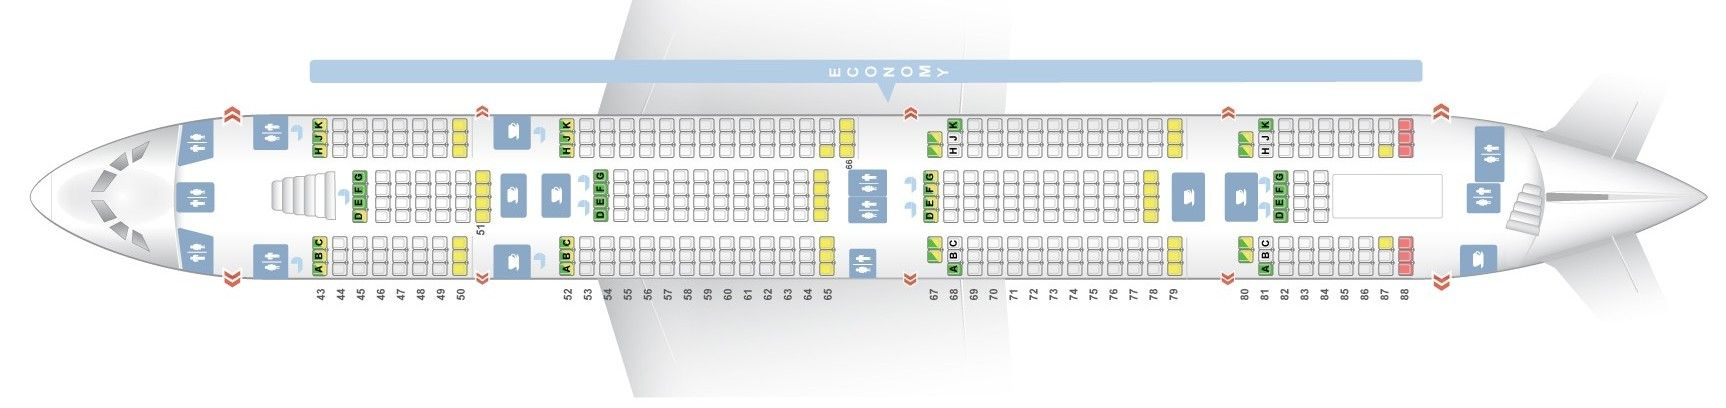 Seat Map And Seating Chart Airbus A380 800 Emirates Three Class V1 Lower Deck Emirates Fleet Airbus A380 Airbus